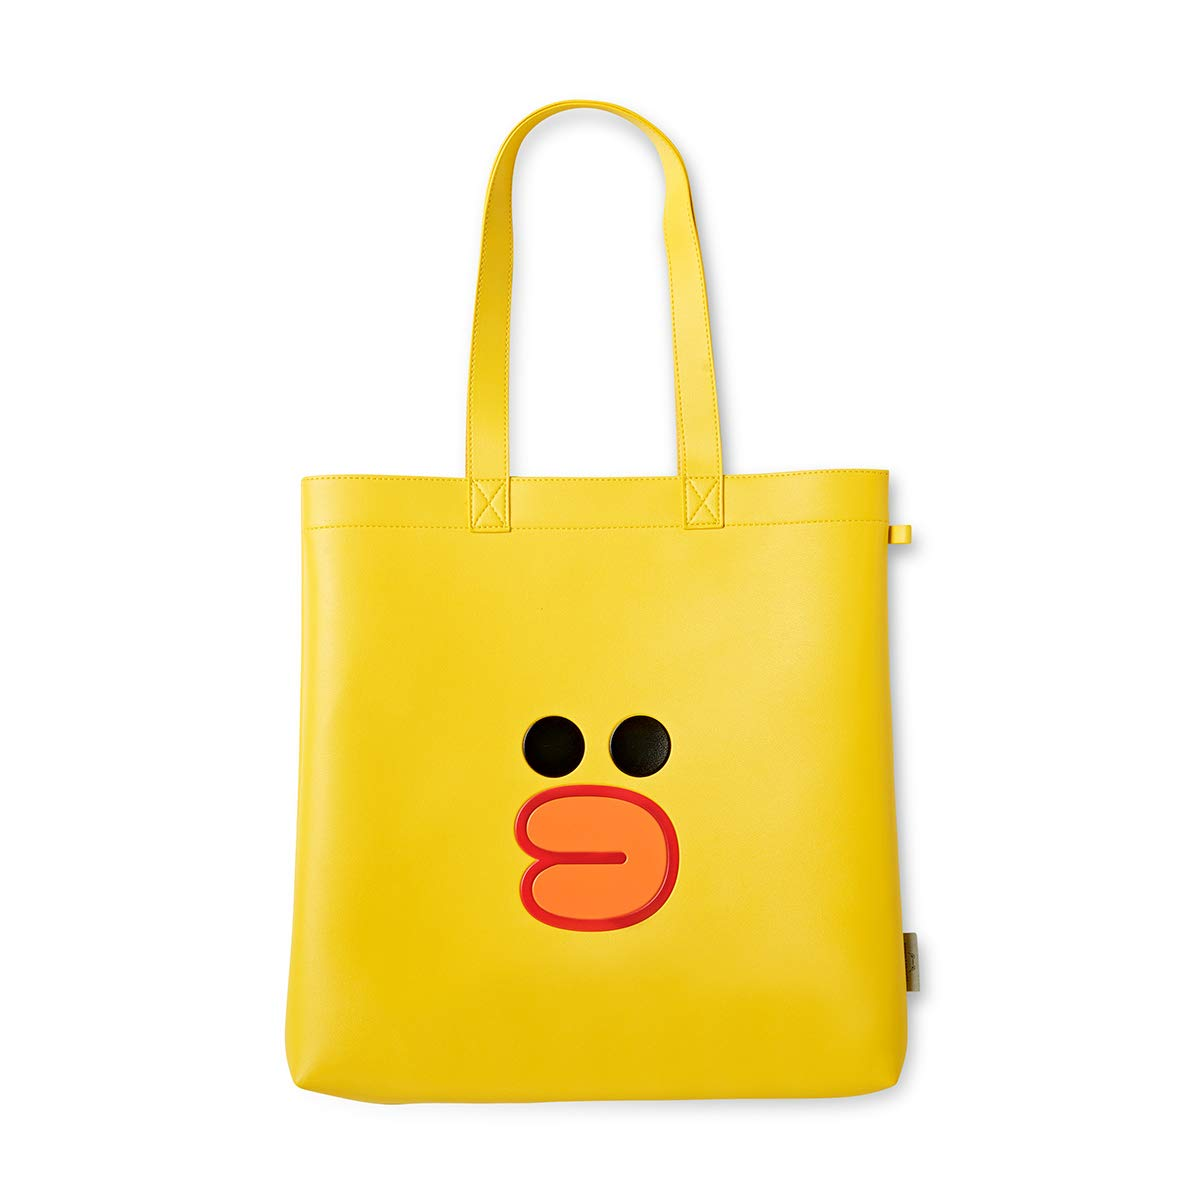 LINE FRIENDS Tote Bag - SALLY Character Faux Leather Purse, Yellow